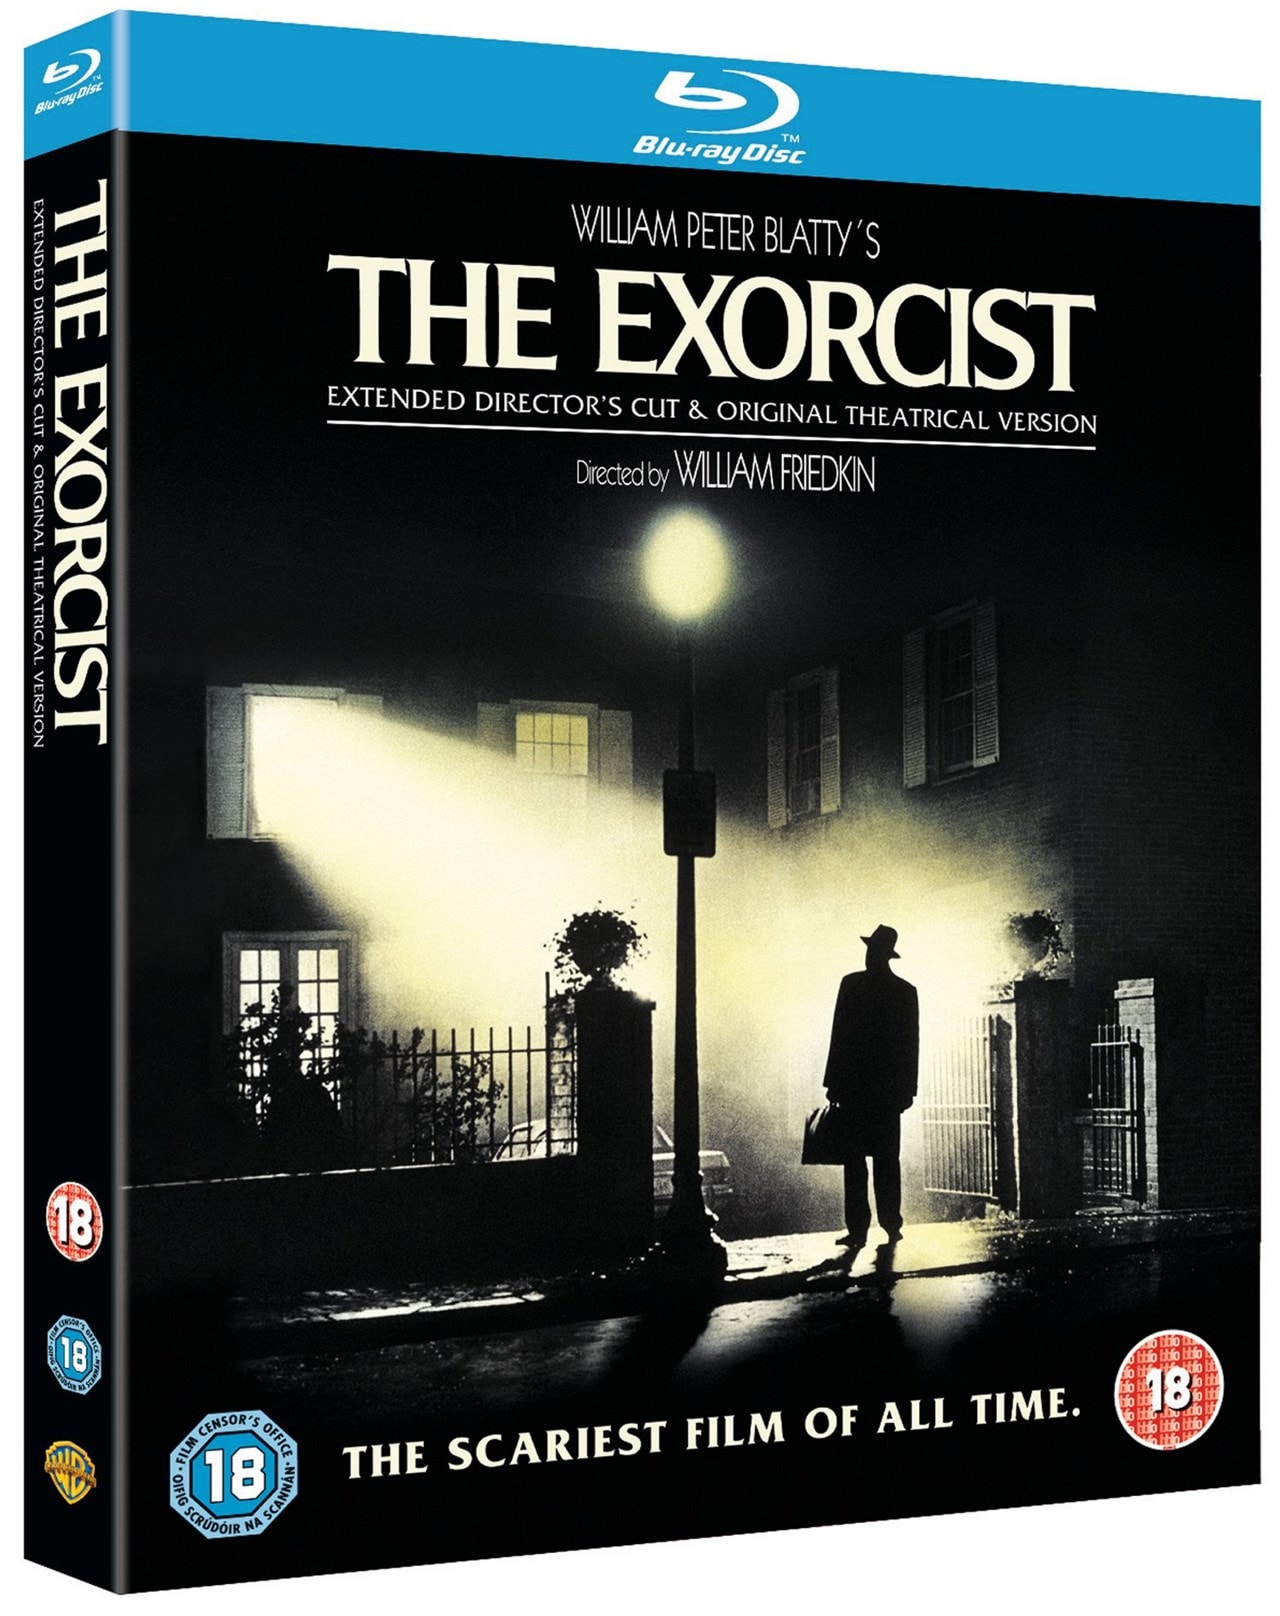 The Exorcist: Extended Director's Cut - 4